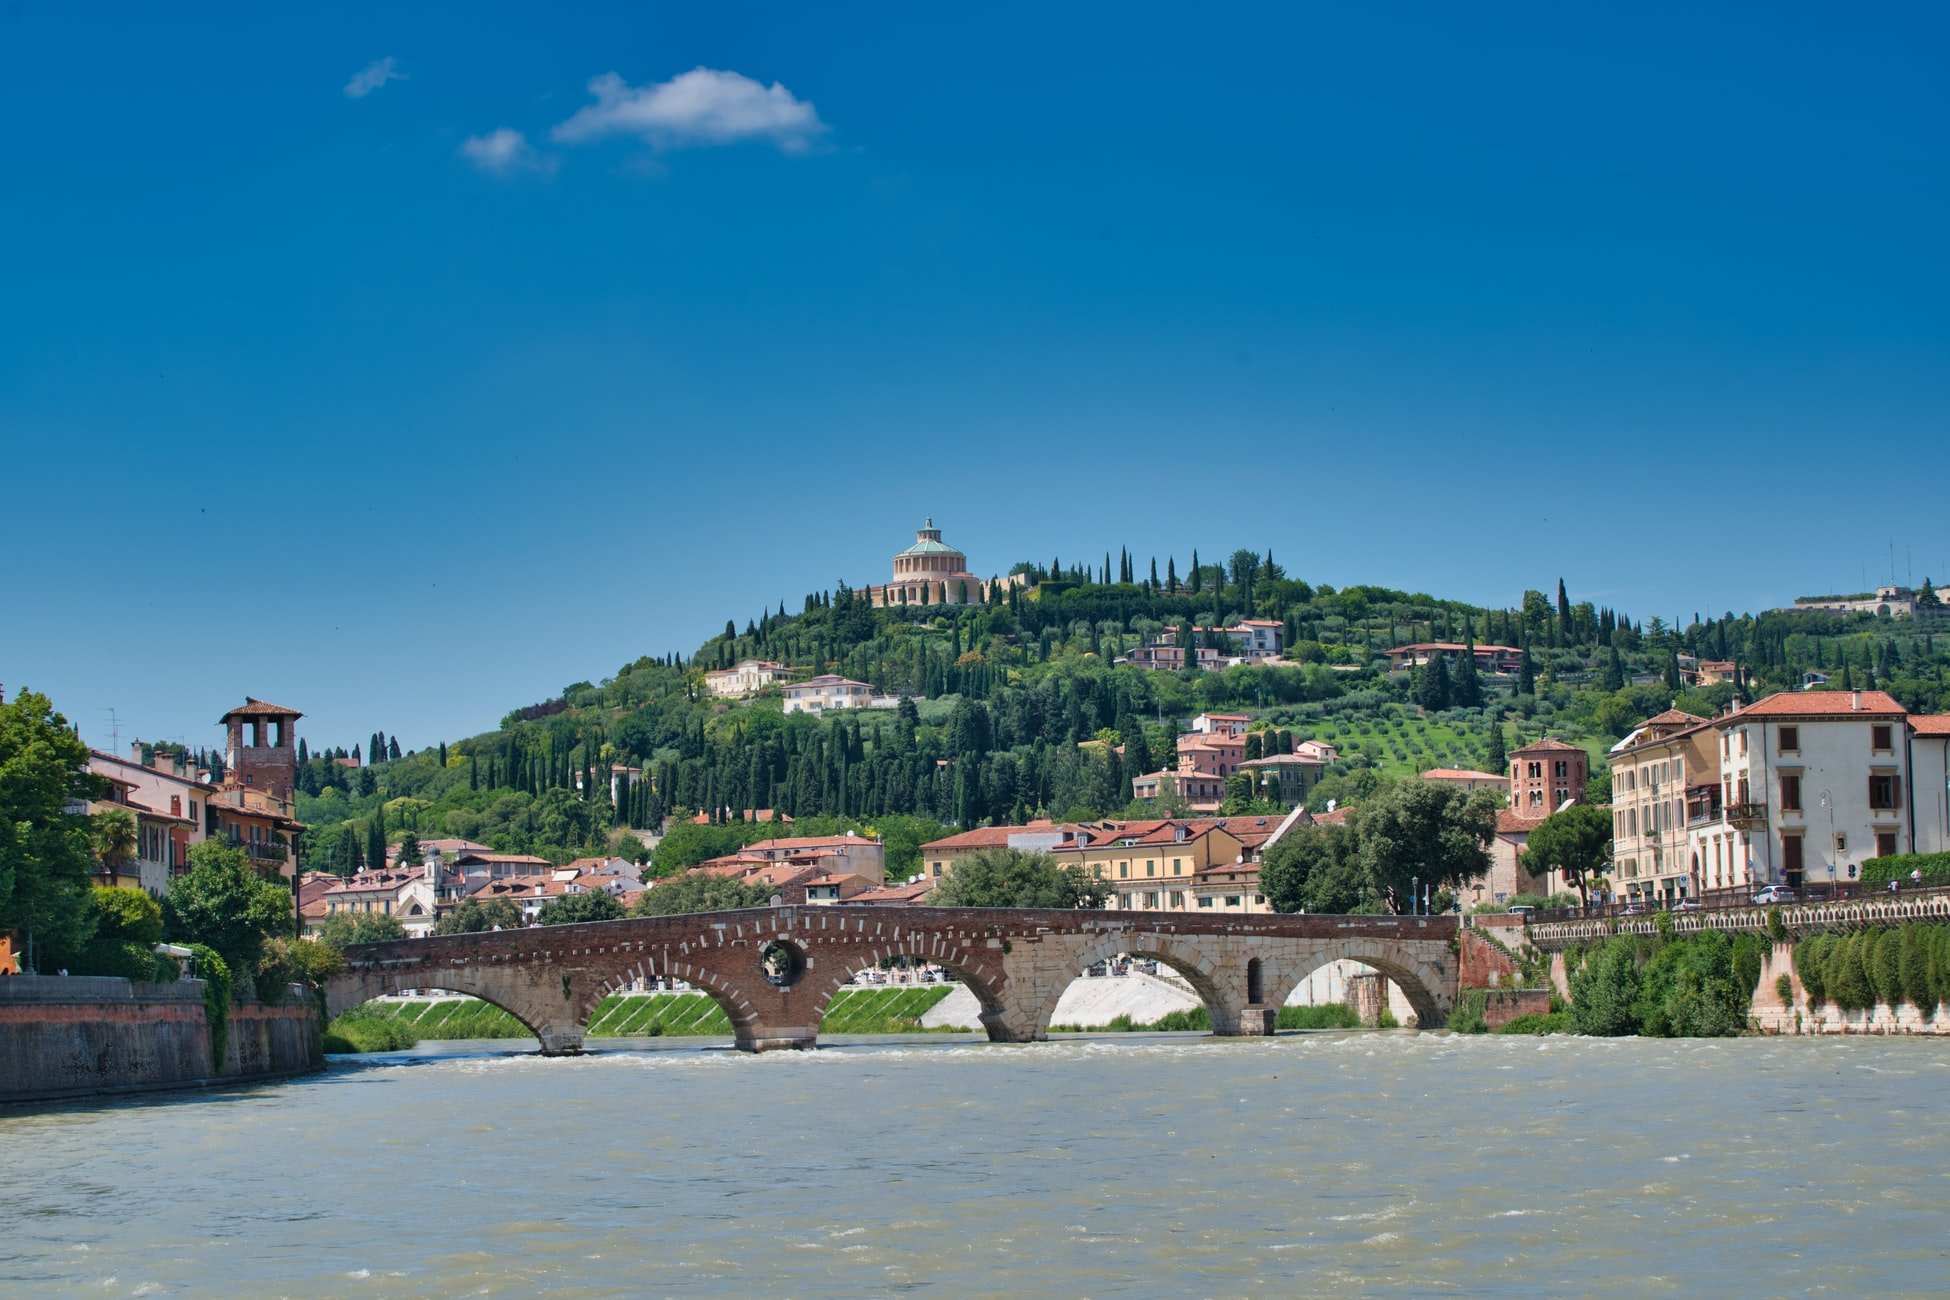 view of hill and bridge in Verona, Italy